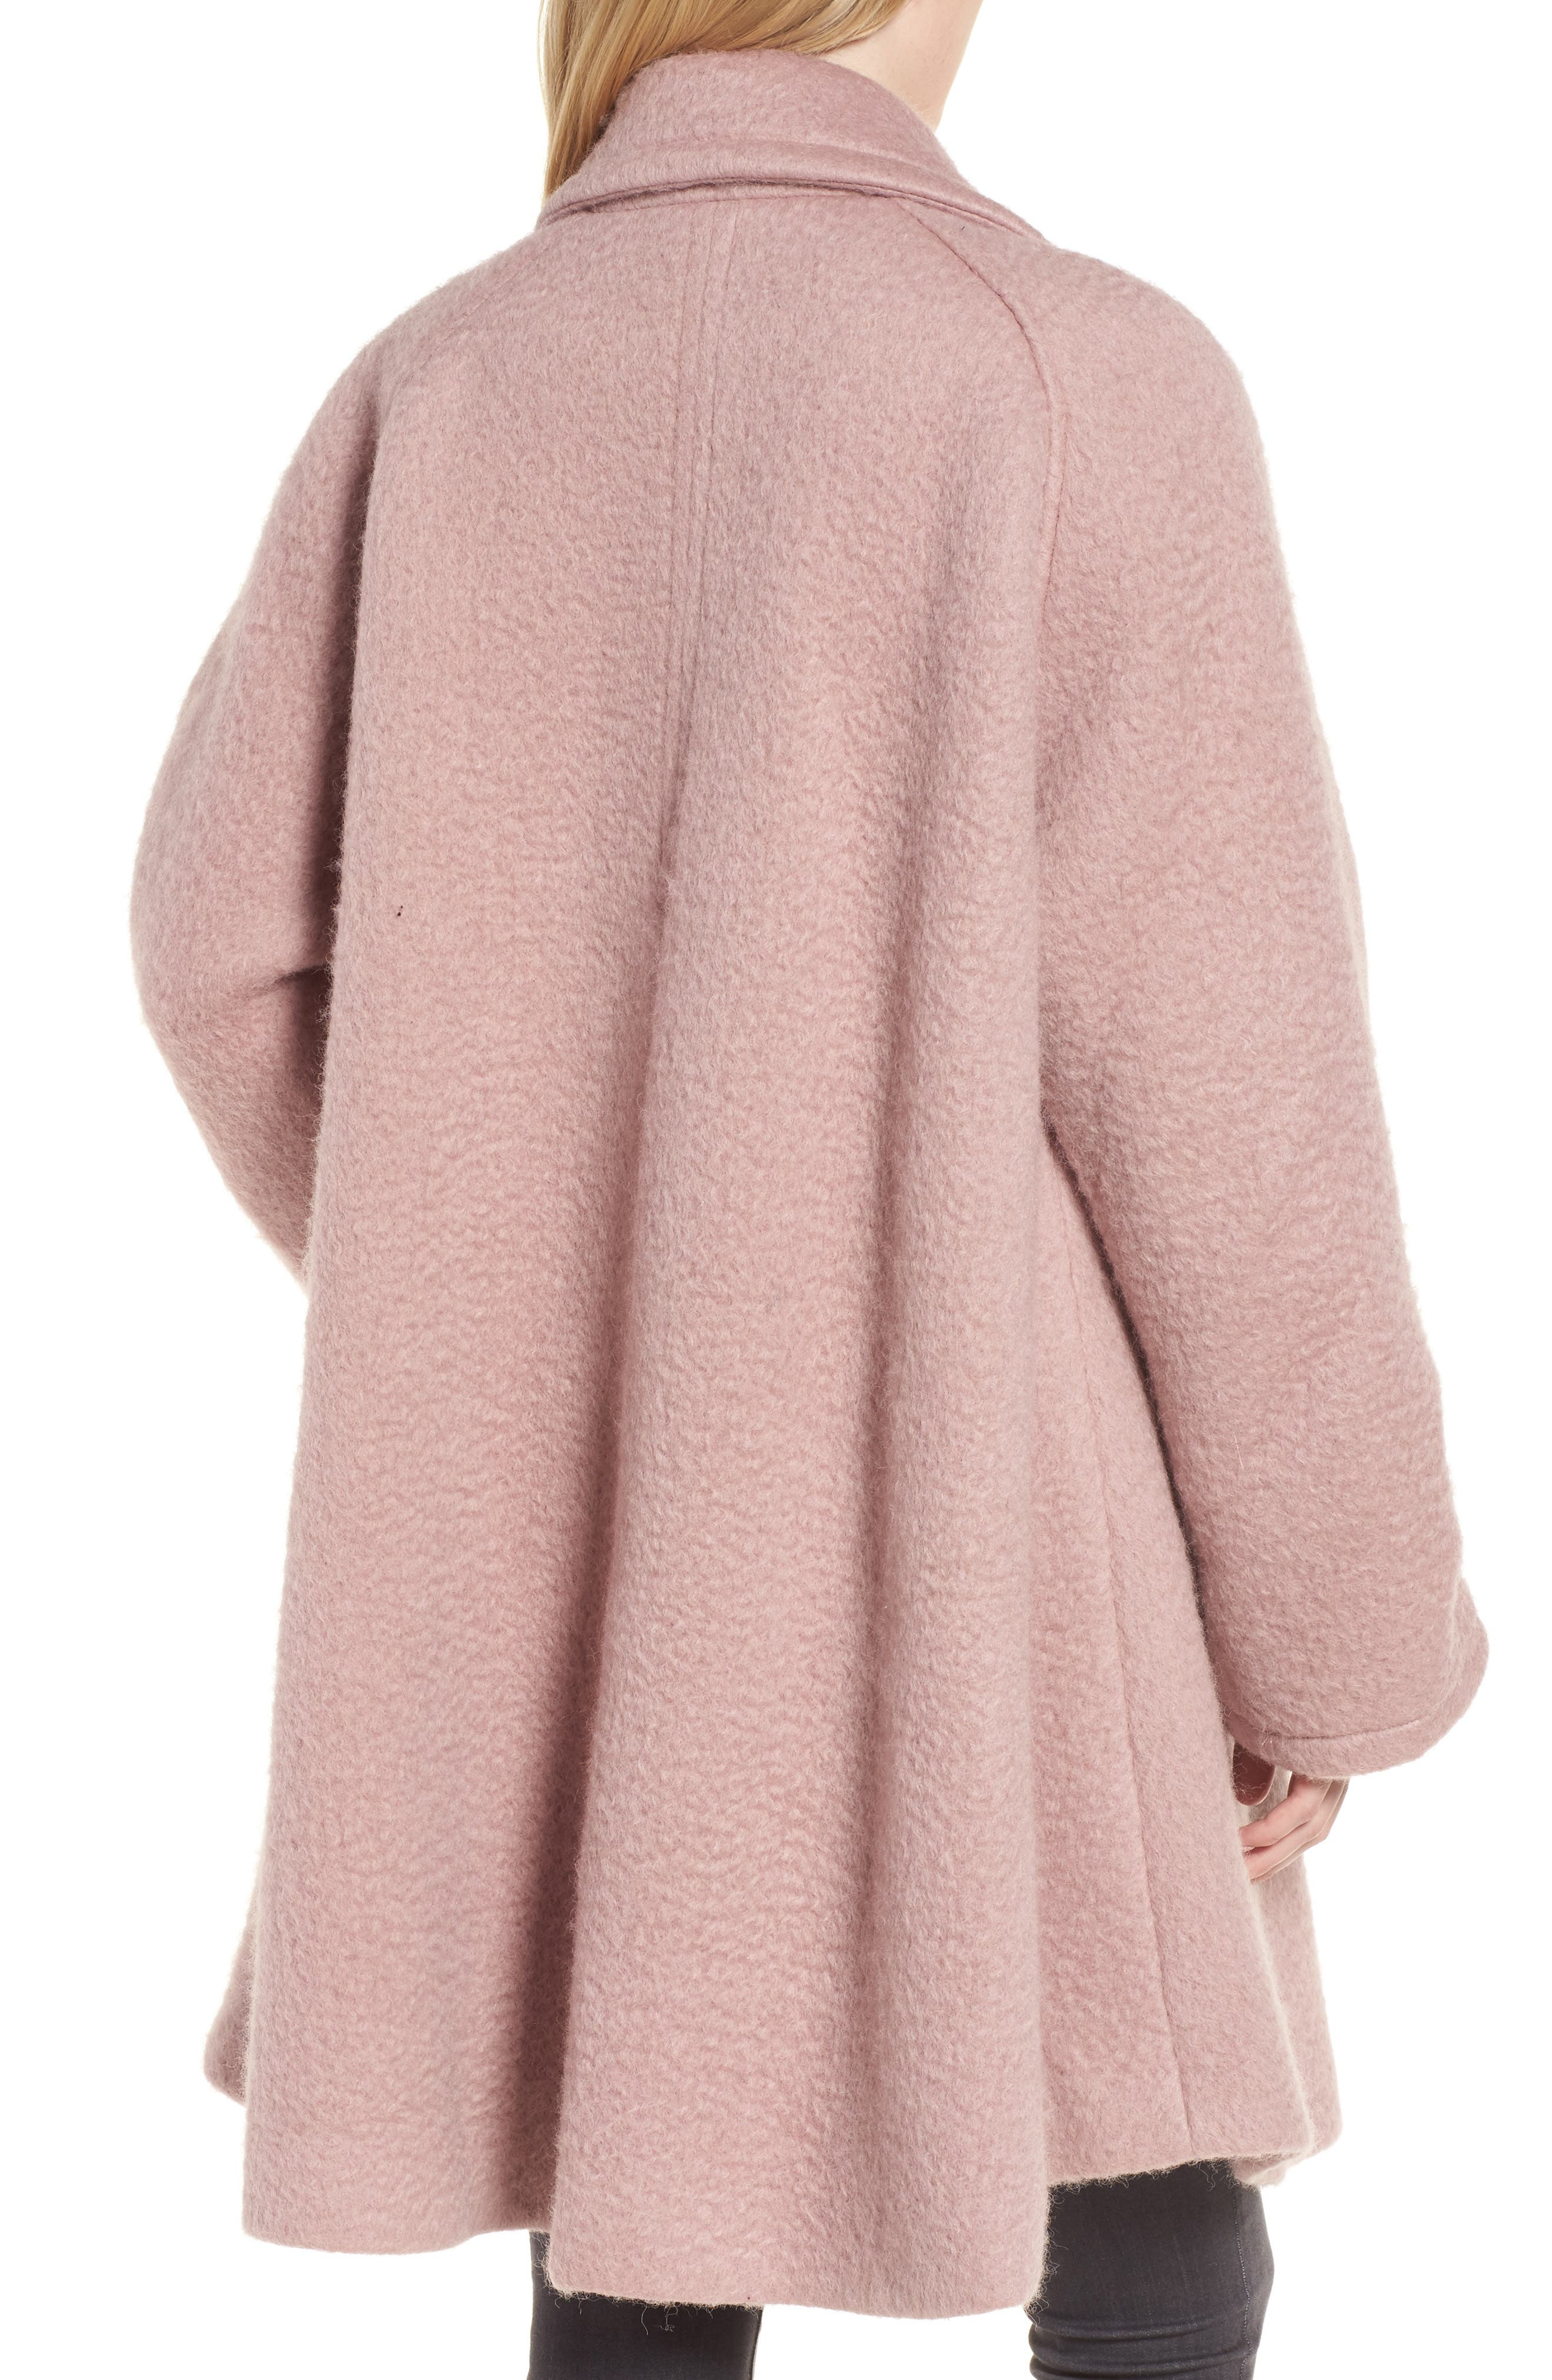 Swing Coat,                             Alternate thumbnail 2, color,                             Light Pink